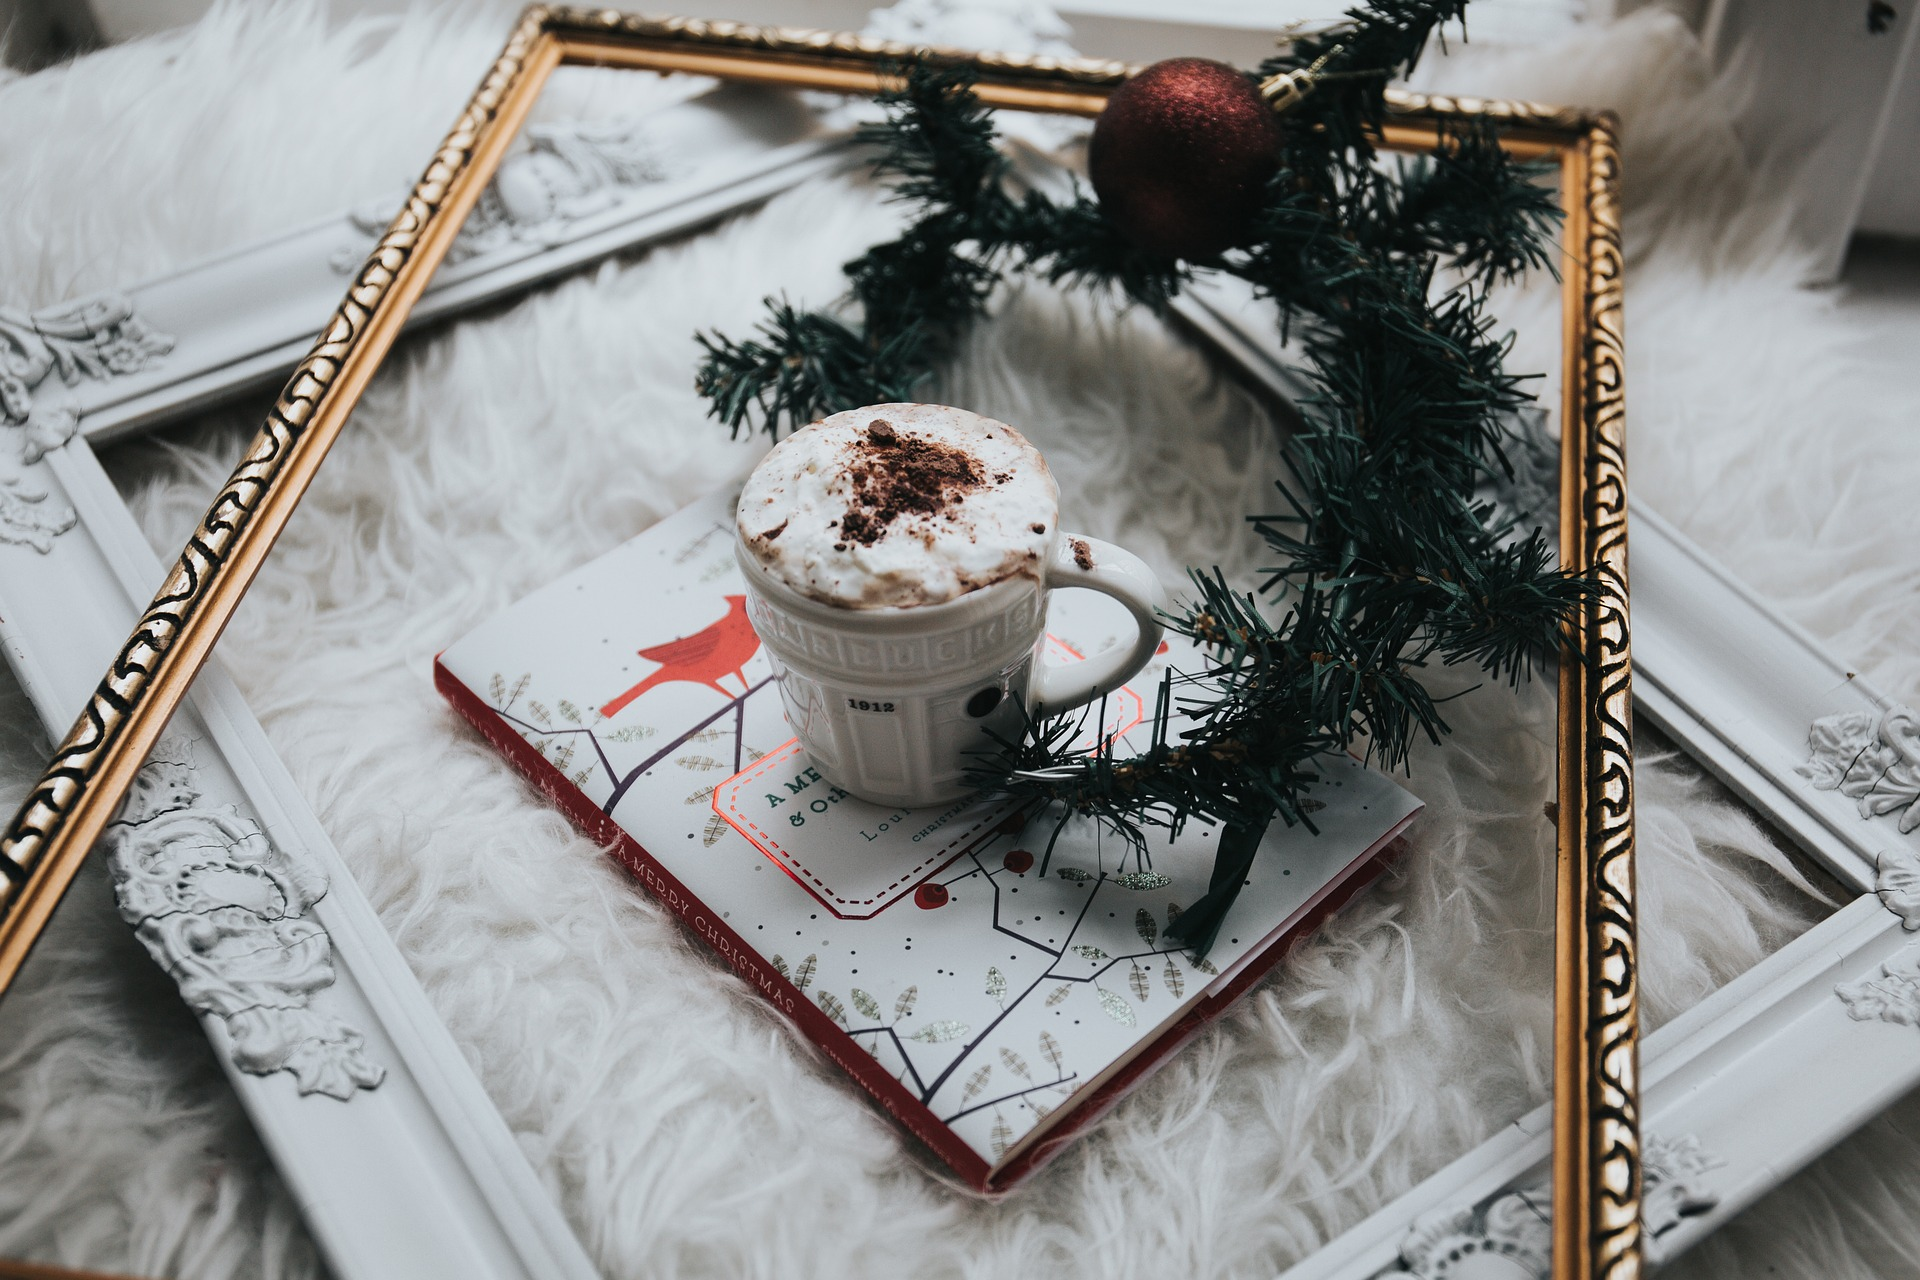 What are your favorite Christmas stories?